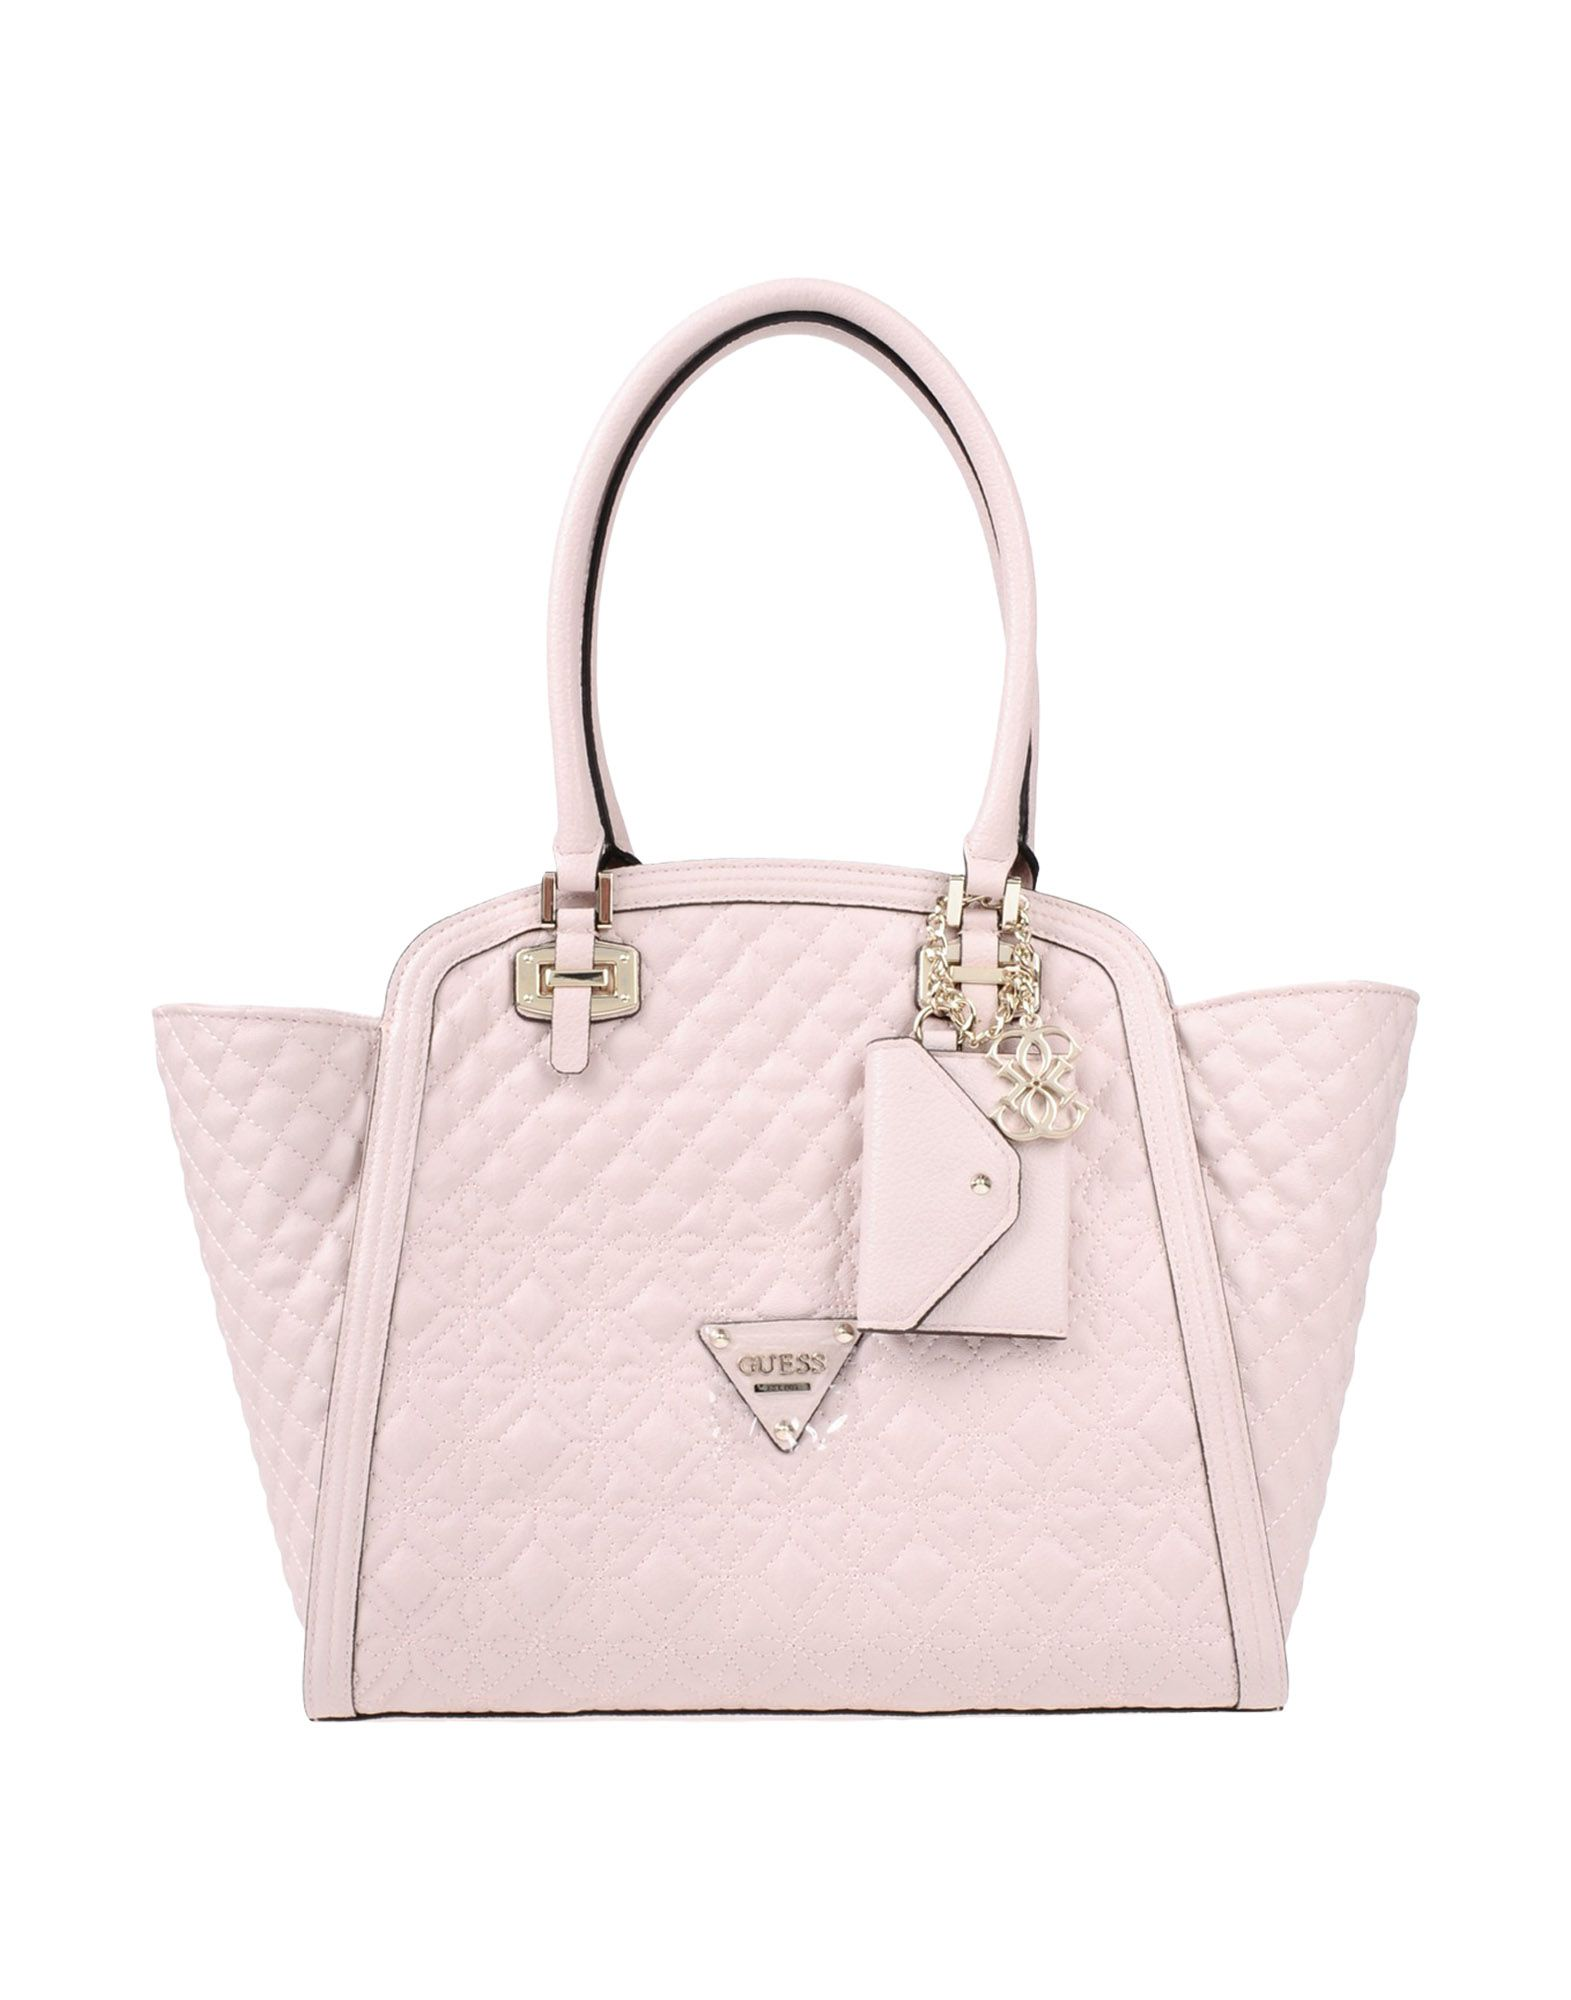 Guess Handbags In Light Pink